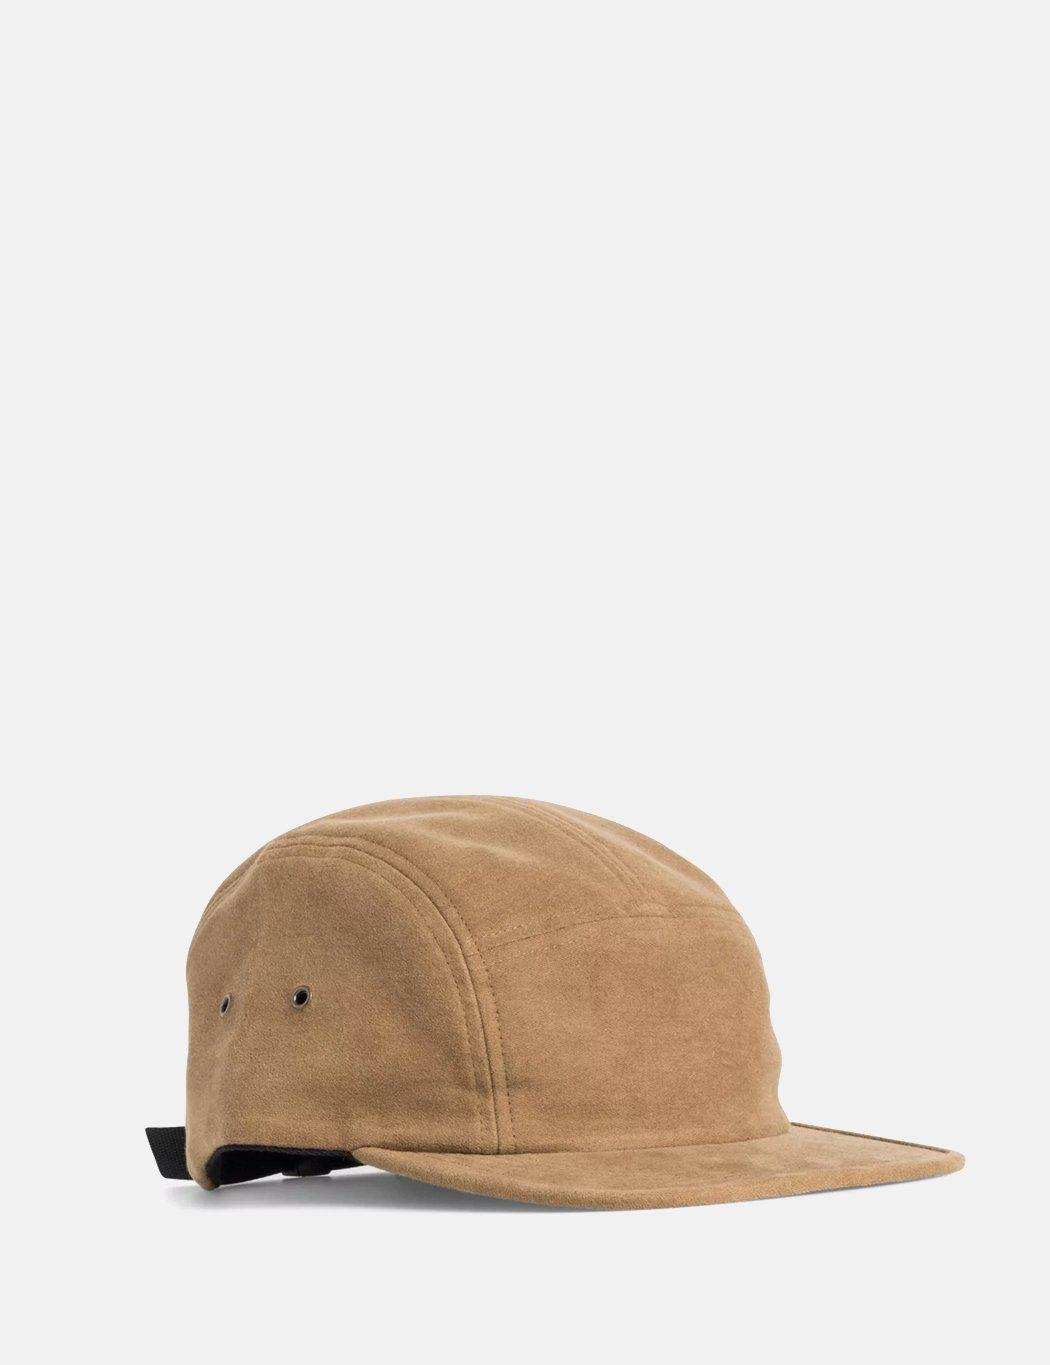 fae74b31181 Norse Projects Moleskin 5 Panel Cap in Brown for Men - Lyst